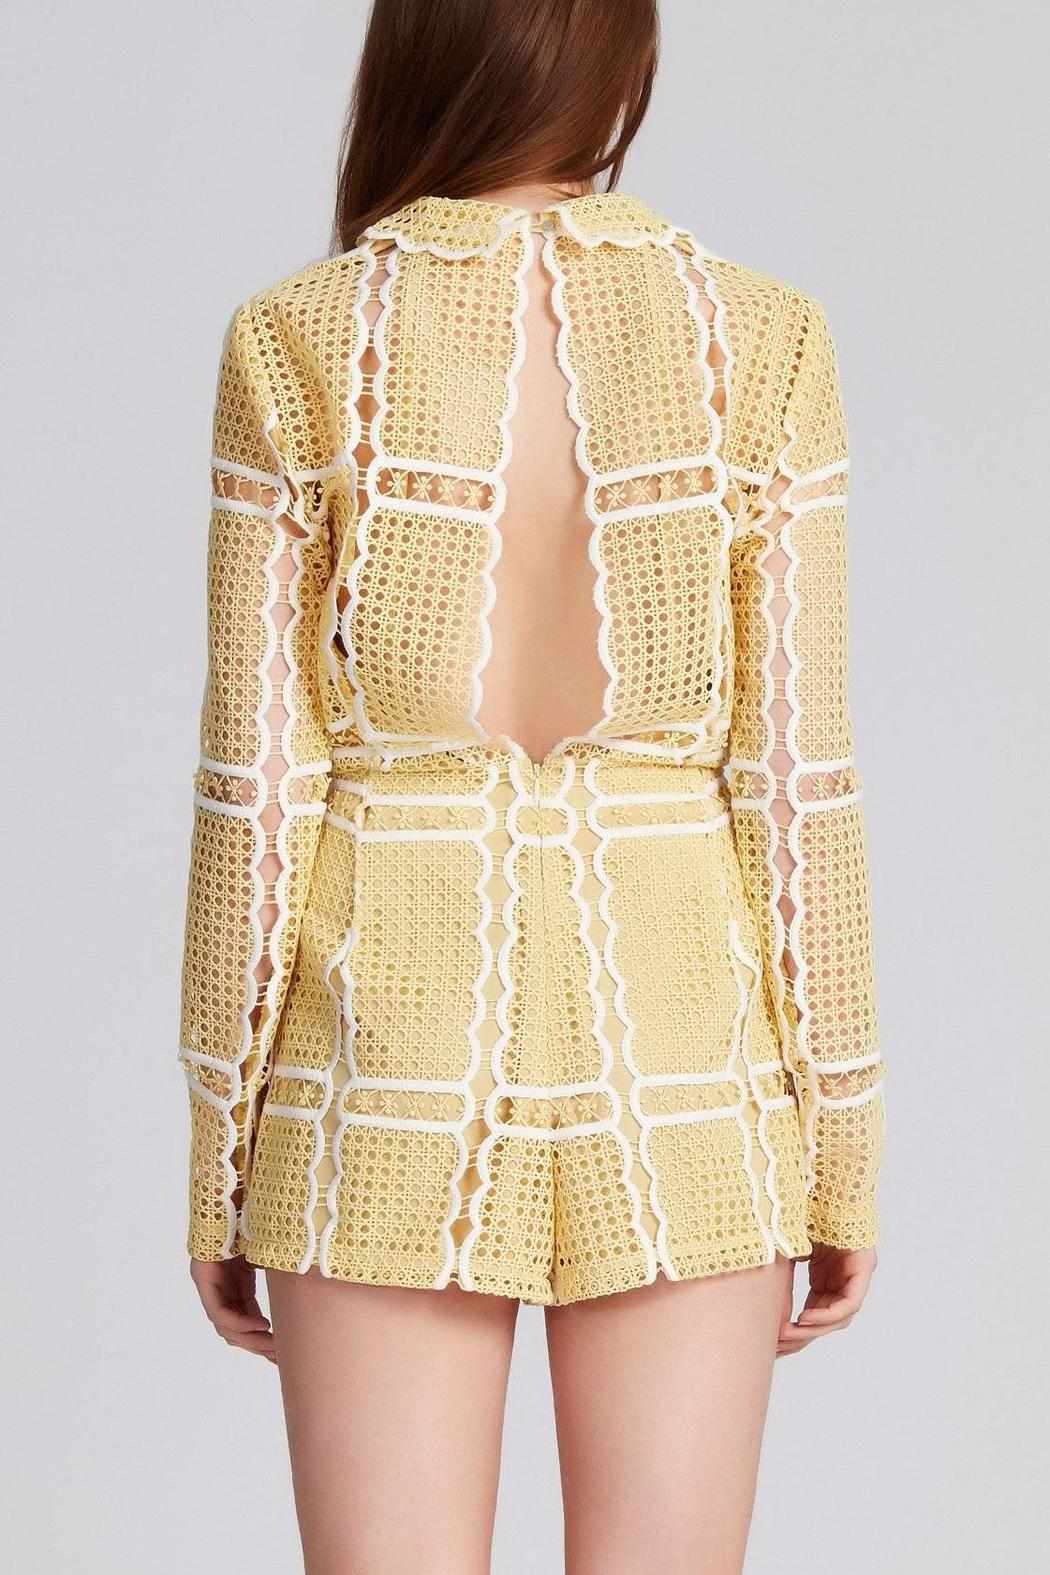 660eb1cfe7b Alice McCall Longsleeve Lace Playsuit from Melbourne by elwood101 ...